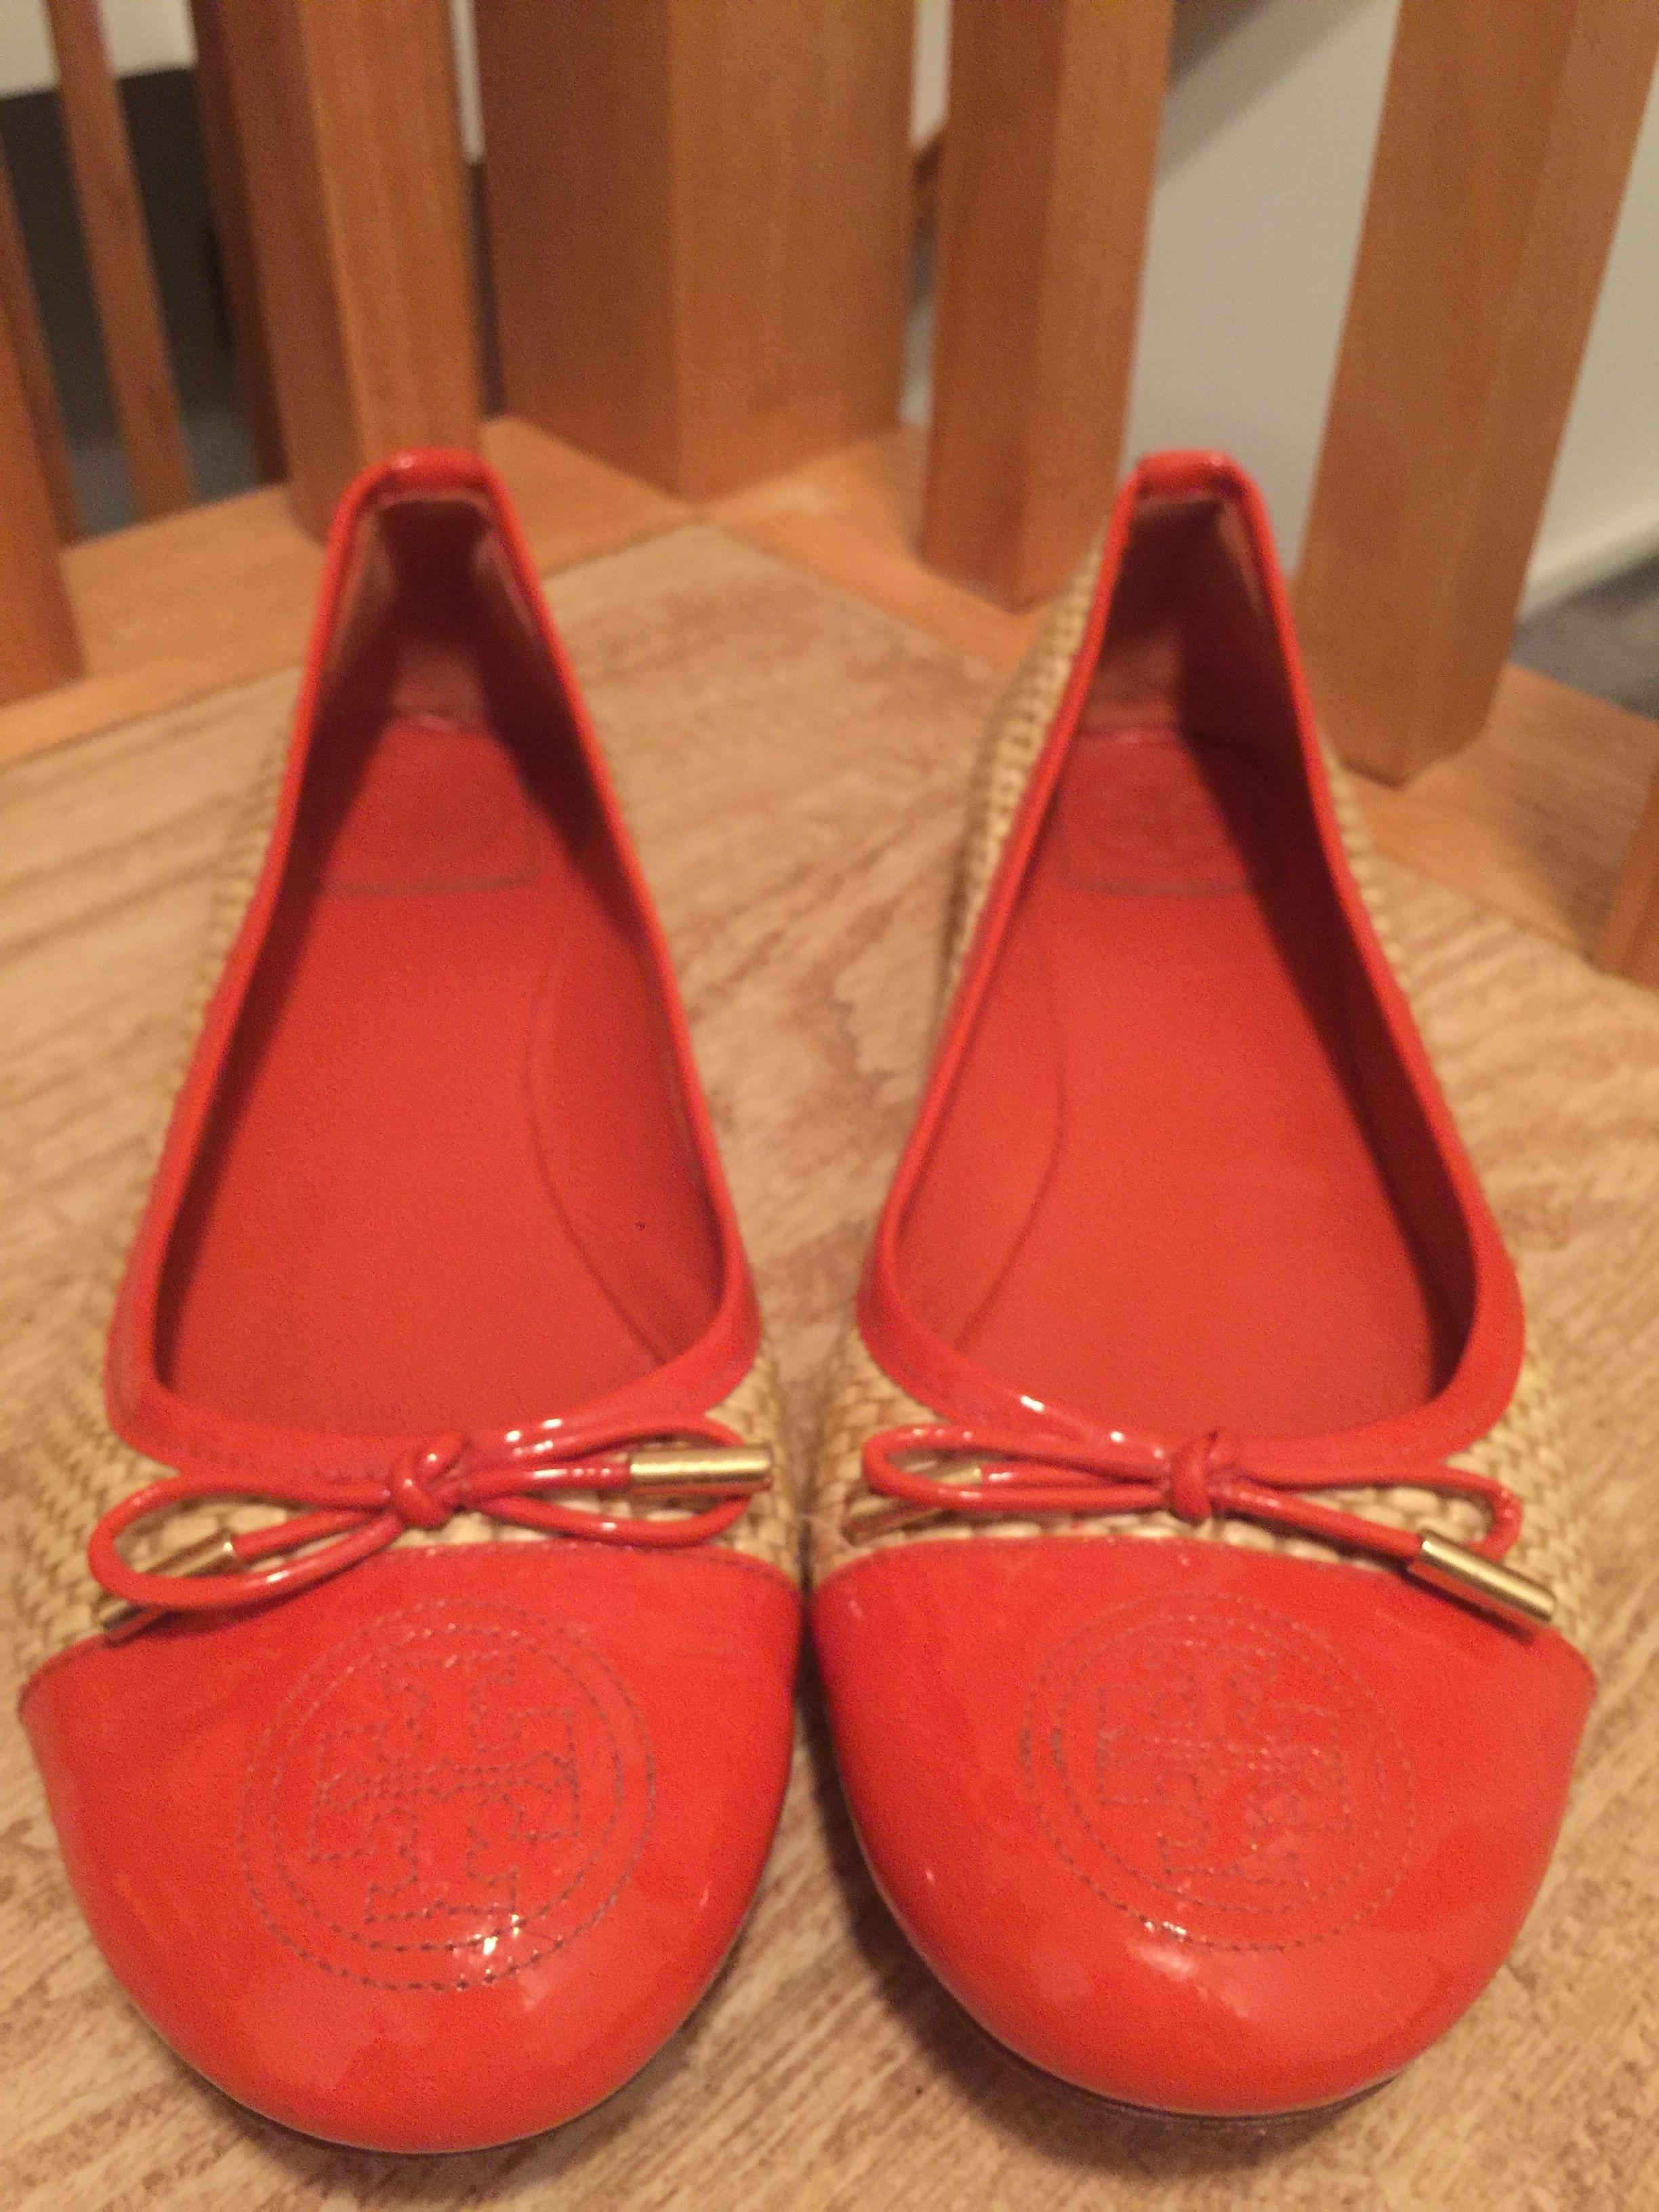 b014e226dc279 ... Tory Burch Orange Tan Catherine Natural Raffia  Patent Ballet Ballet  Ballet Flats Size US ...